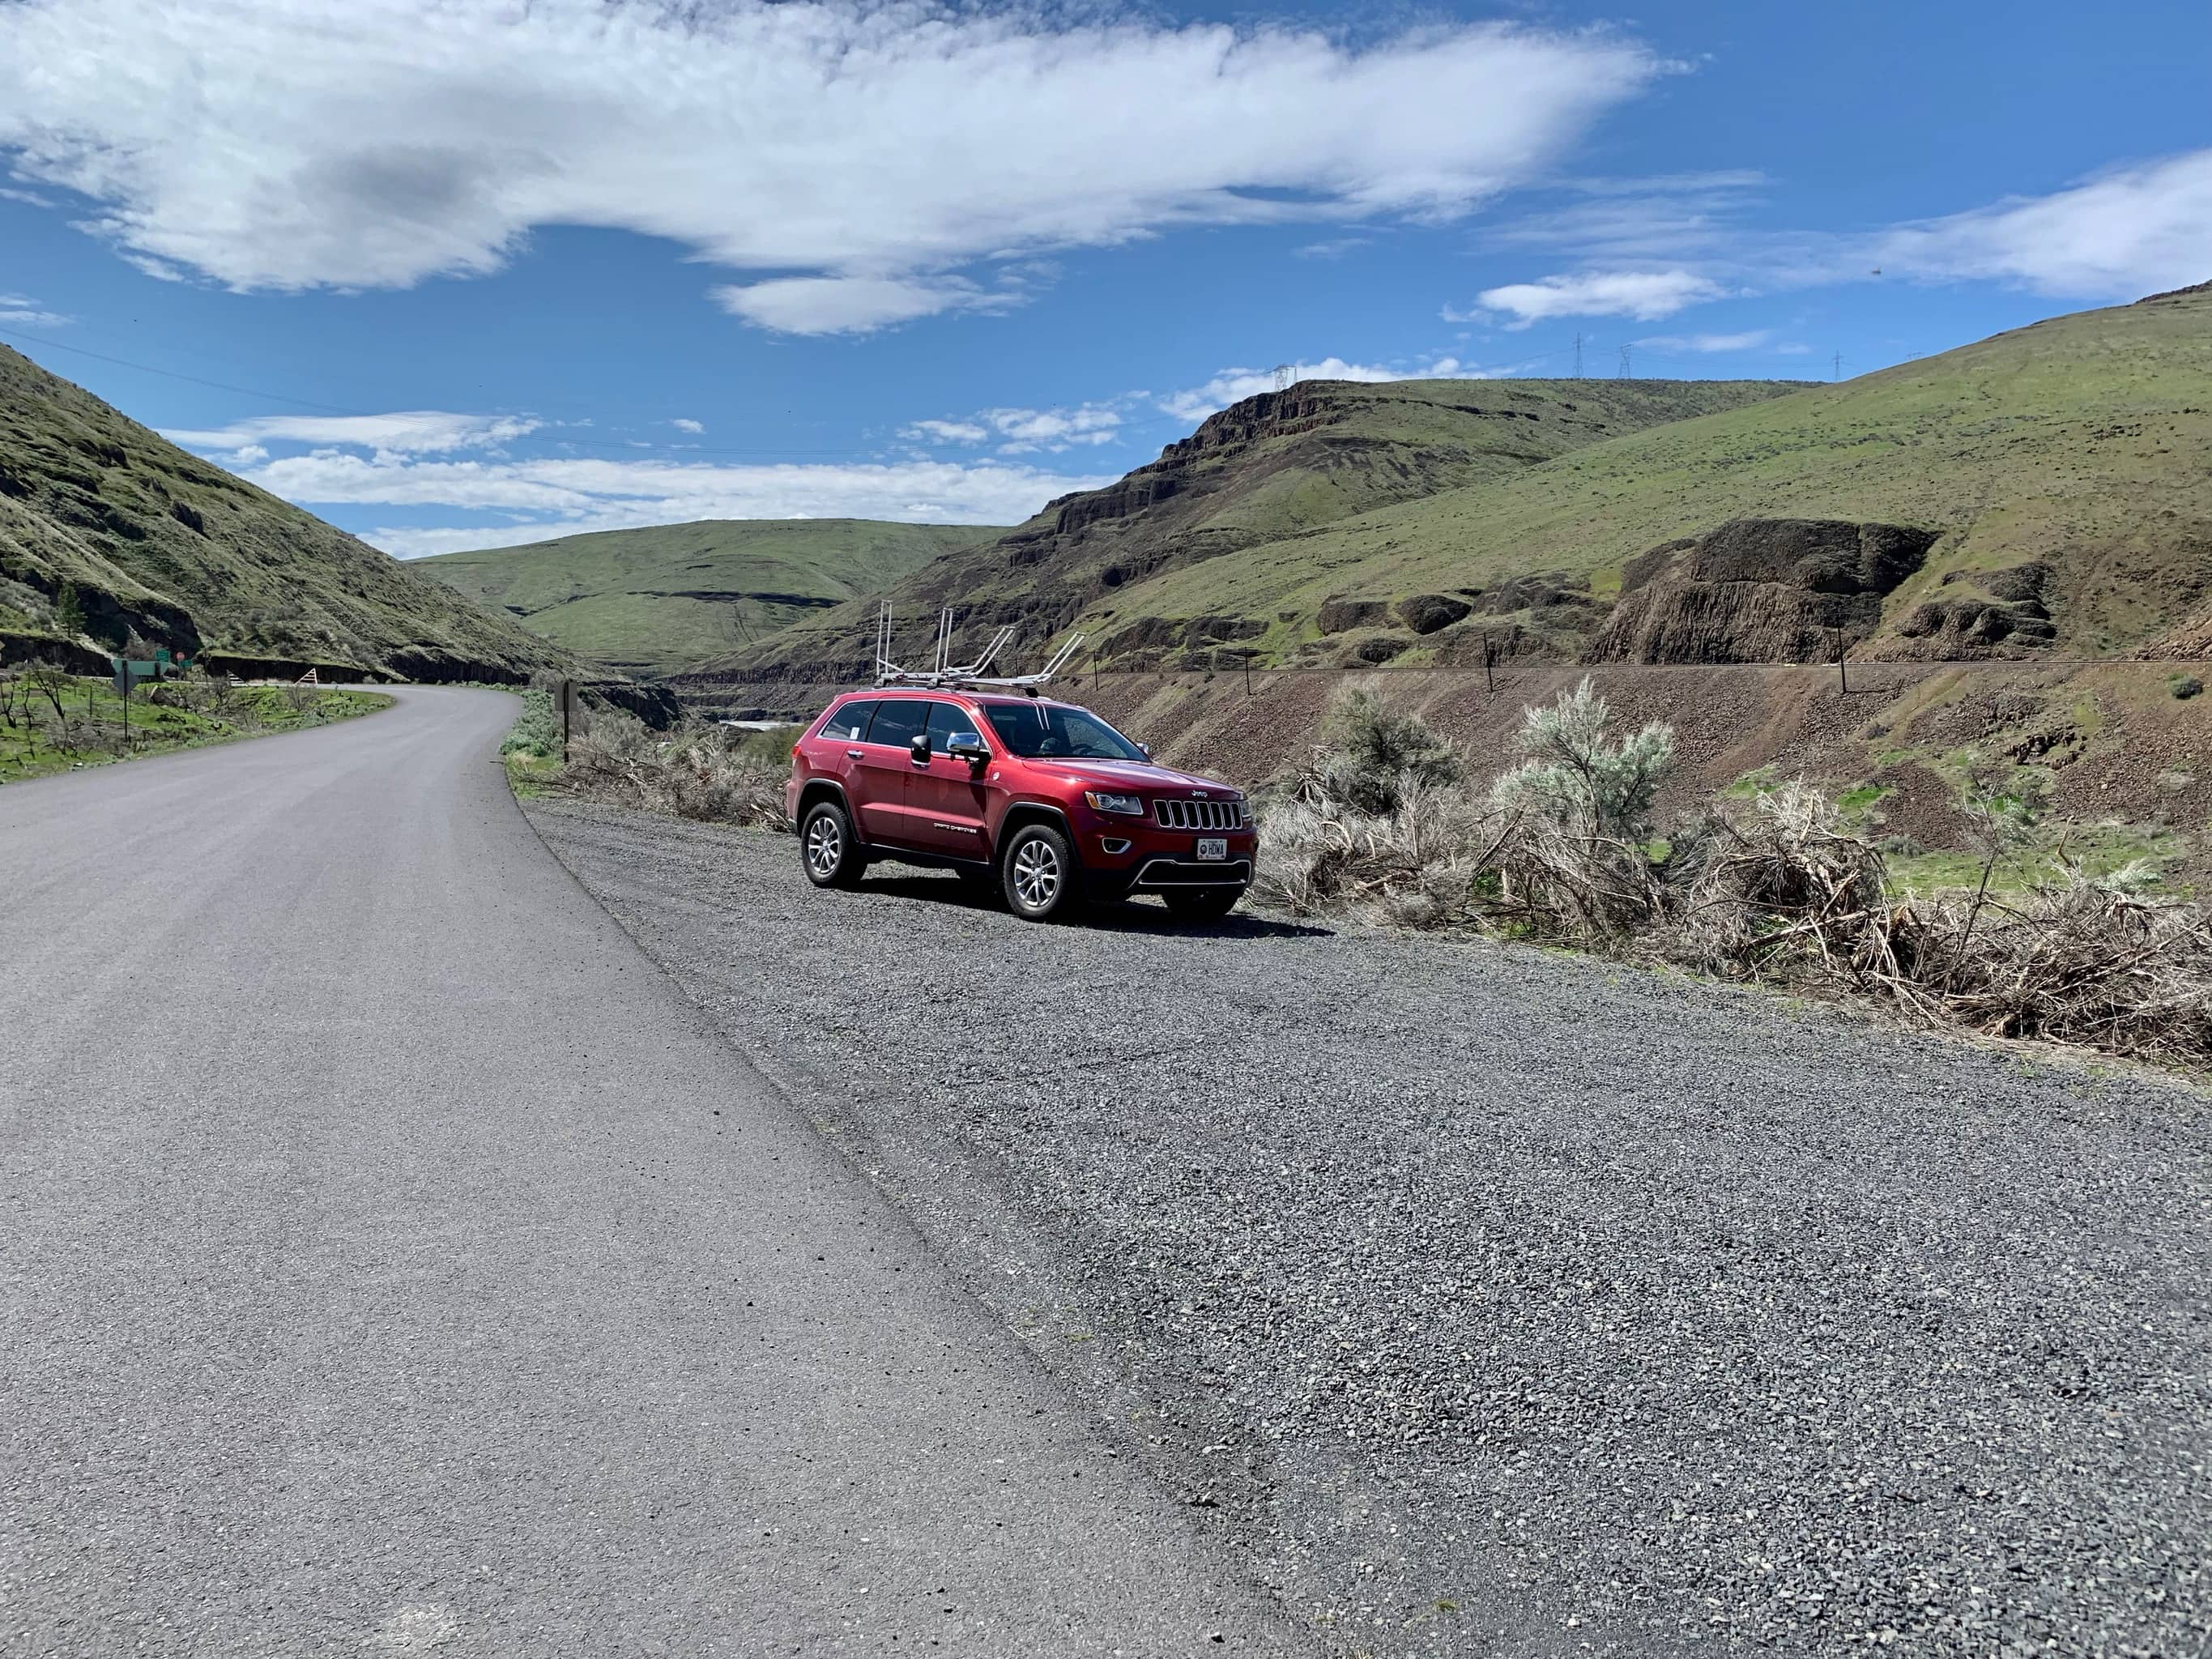 Parking spot on shoulder of the road near Sherar's Falls on the lower Deschutes River.